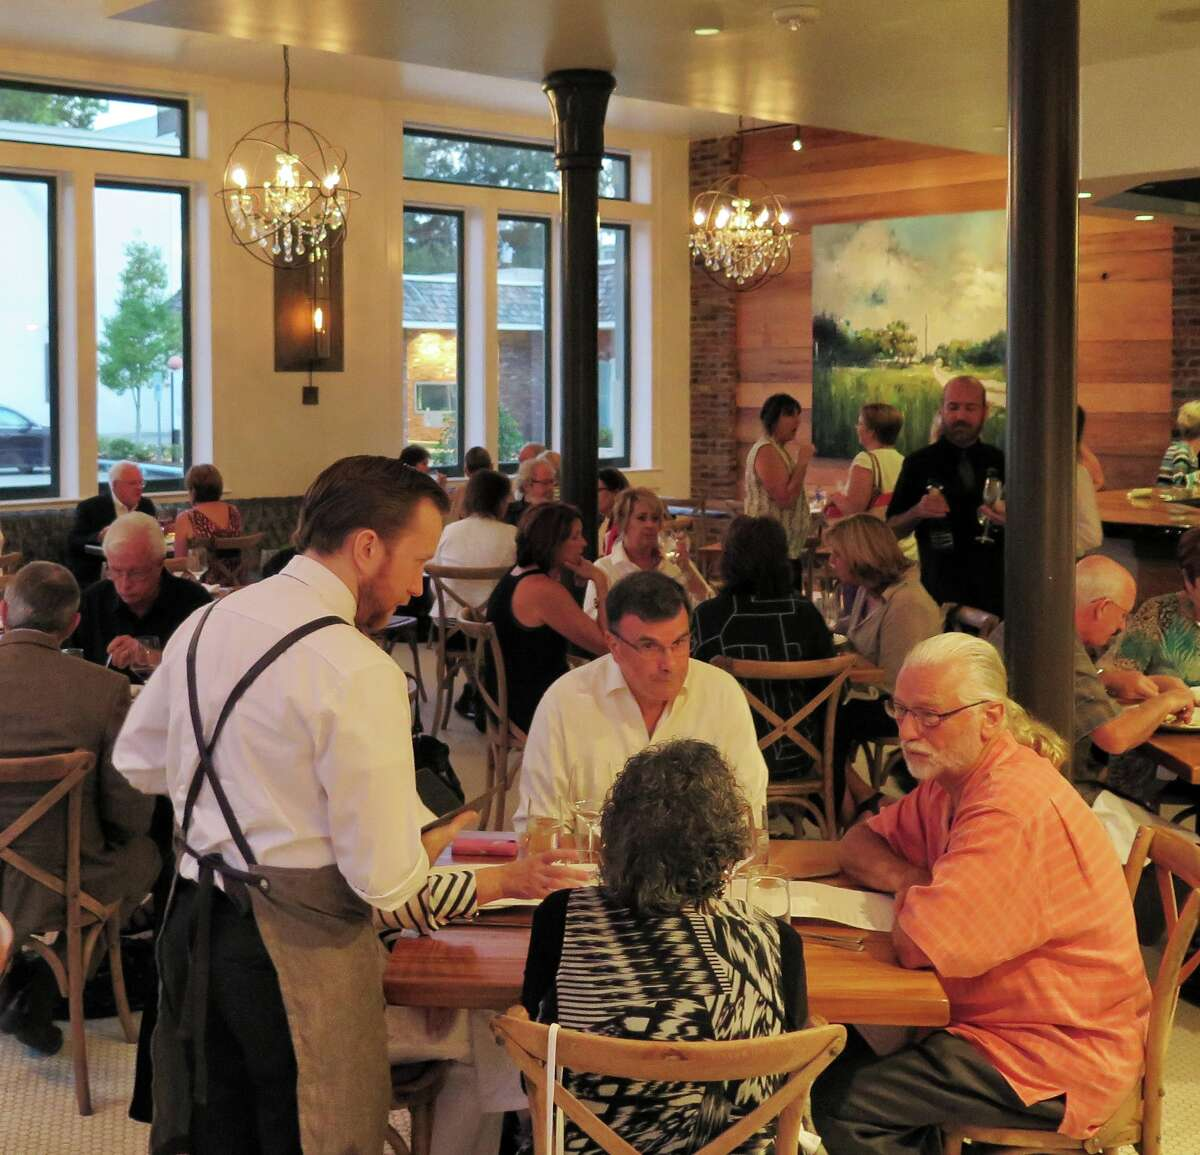 Ox Lot 9 is a casual dinner restaurant at the Southern Hotel in Covington, La.